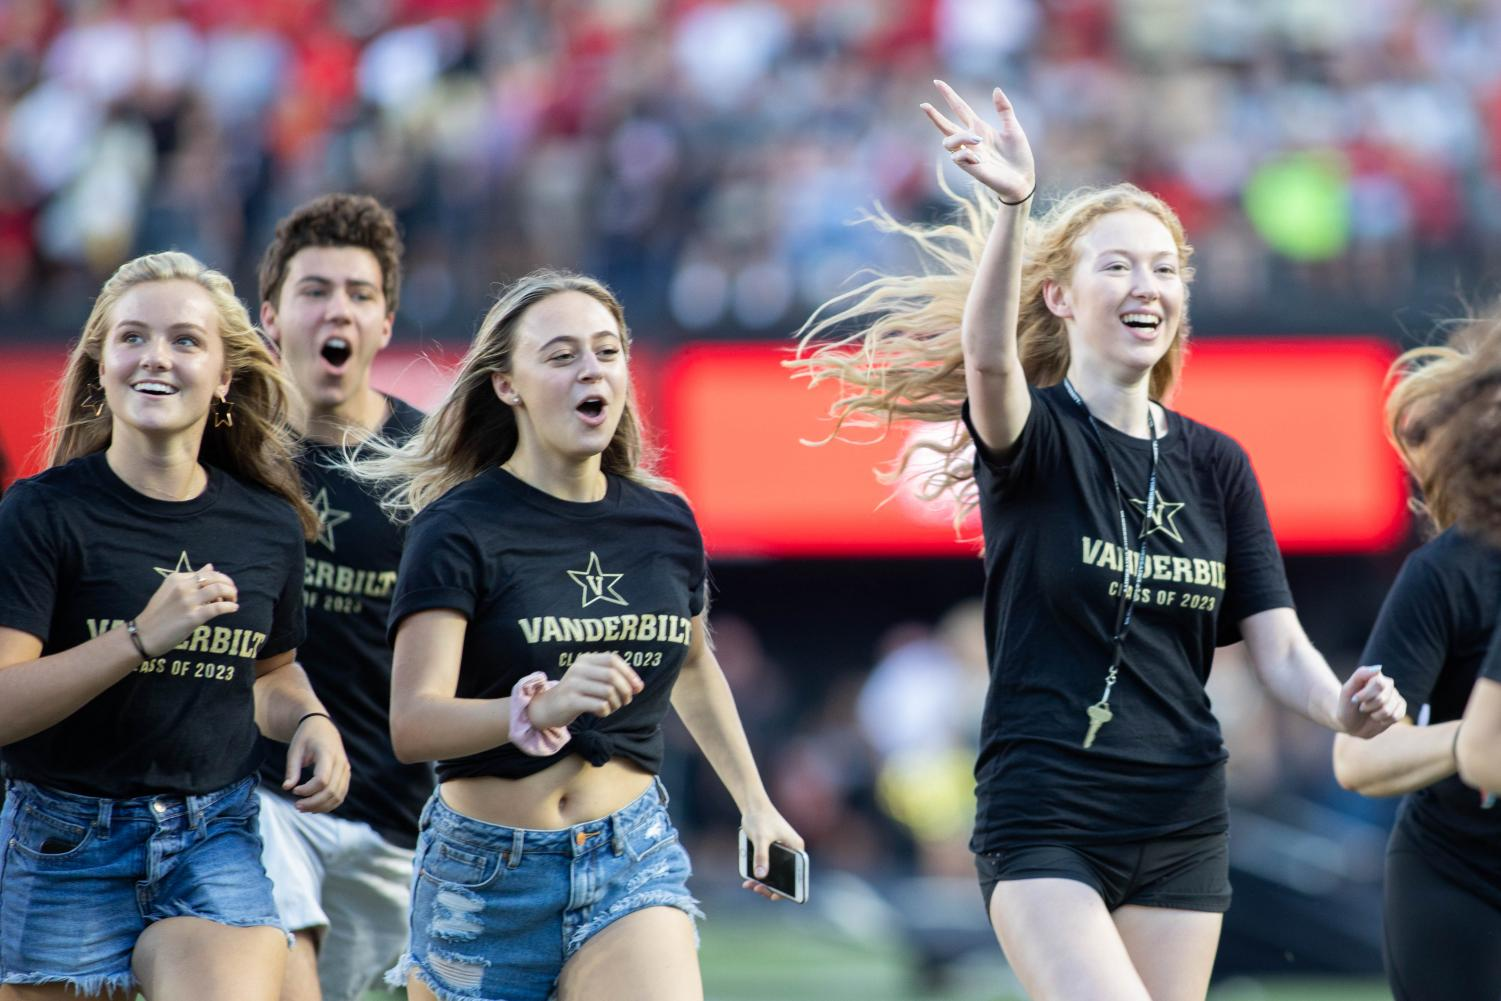 New+students+run+across+the+football+field+for+Anchor+Dash+2019+on+Saturday%2C+Aug.+31.+%28Photo+by+Emily+Gon%C3%A7alves%29